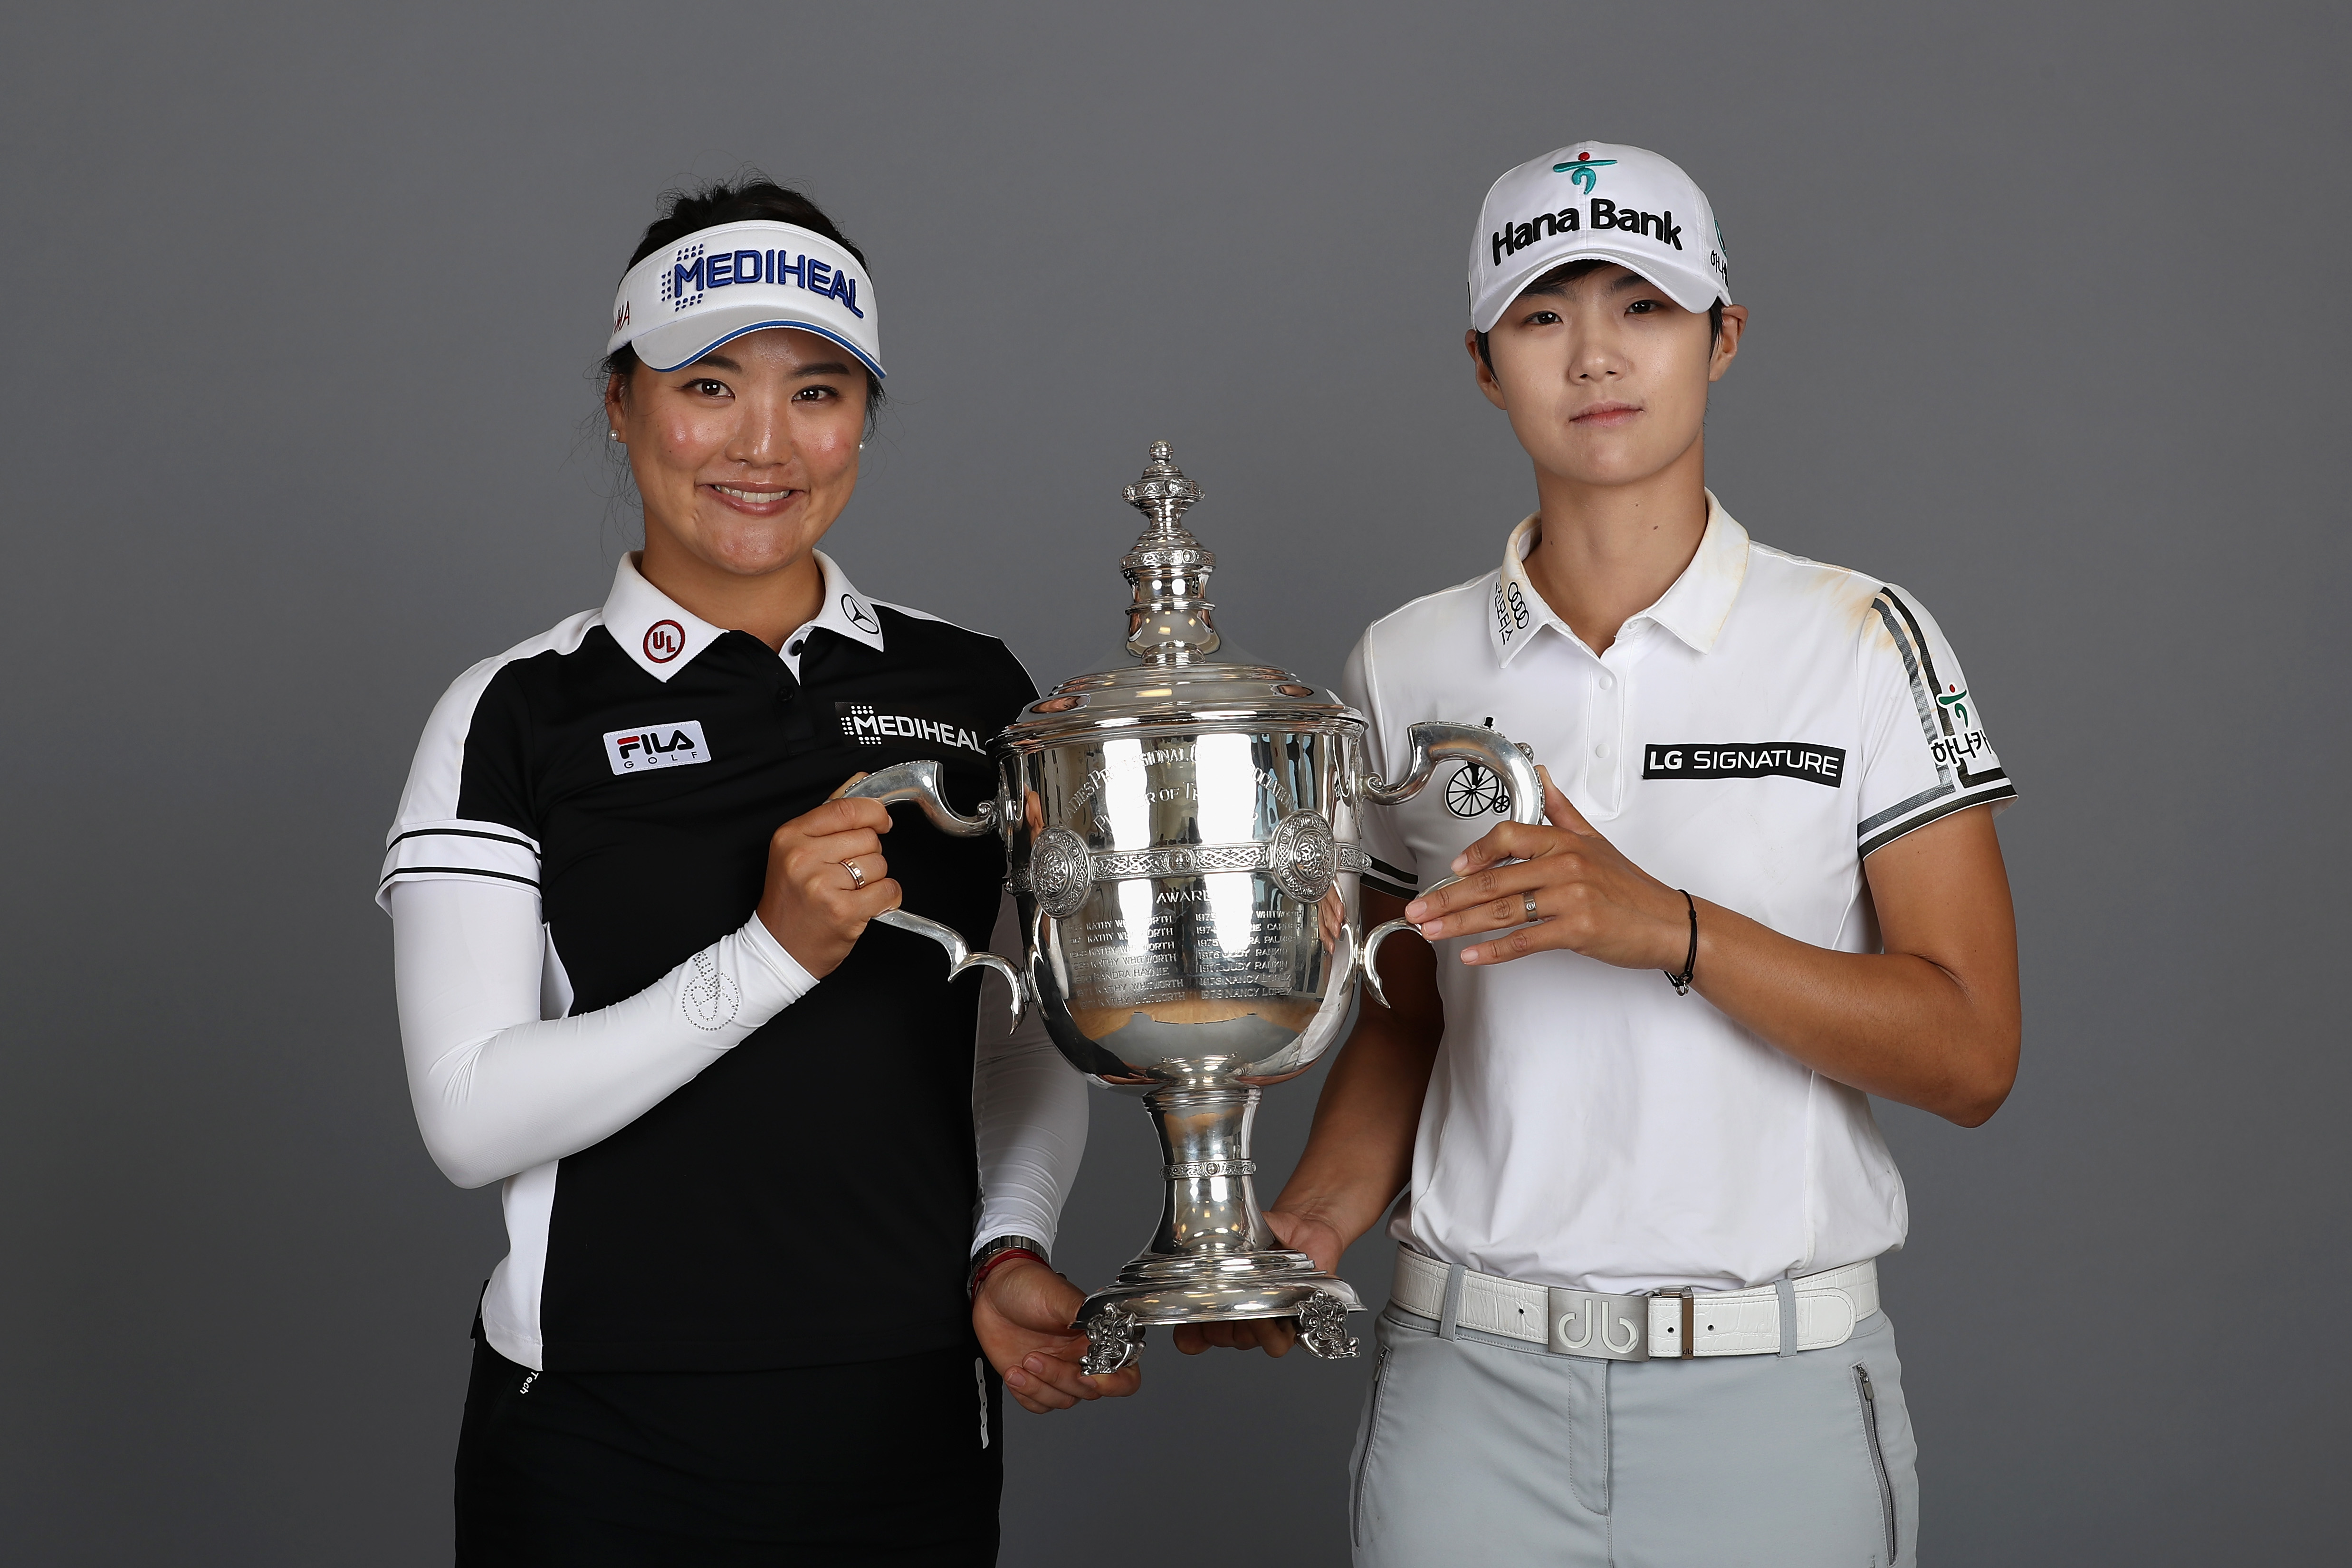 So Yeon Ryu & Sung Hyun Park: The two prettiest swings in golf!